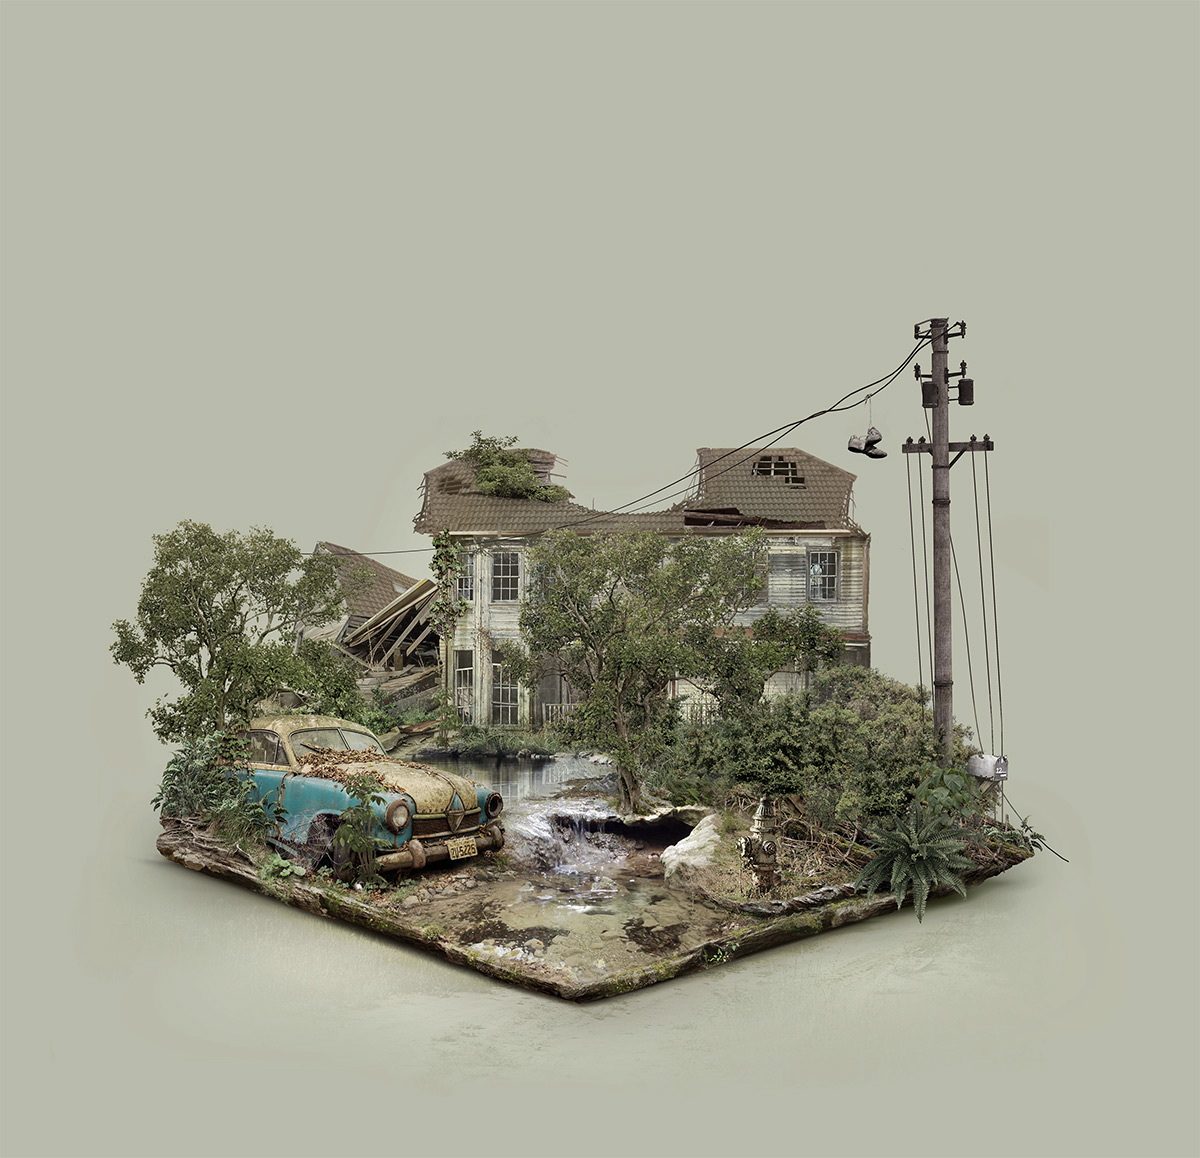 Fantastic Digitally-Manipulated Floating Islands